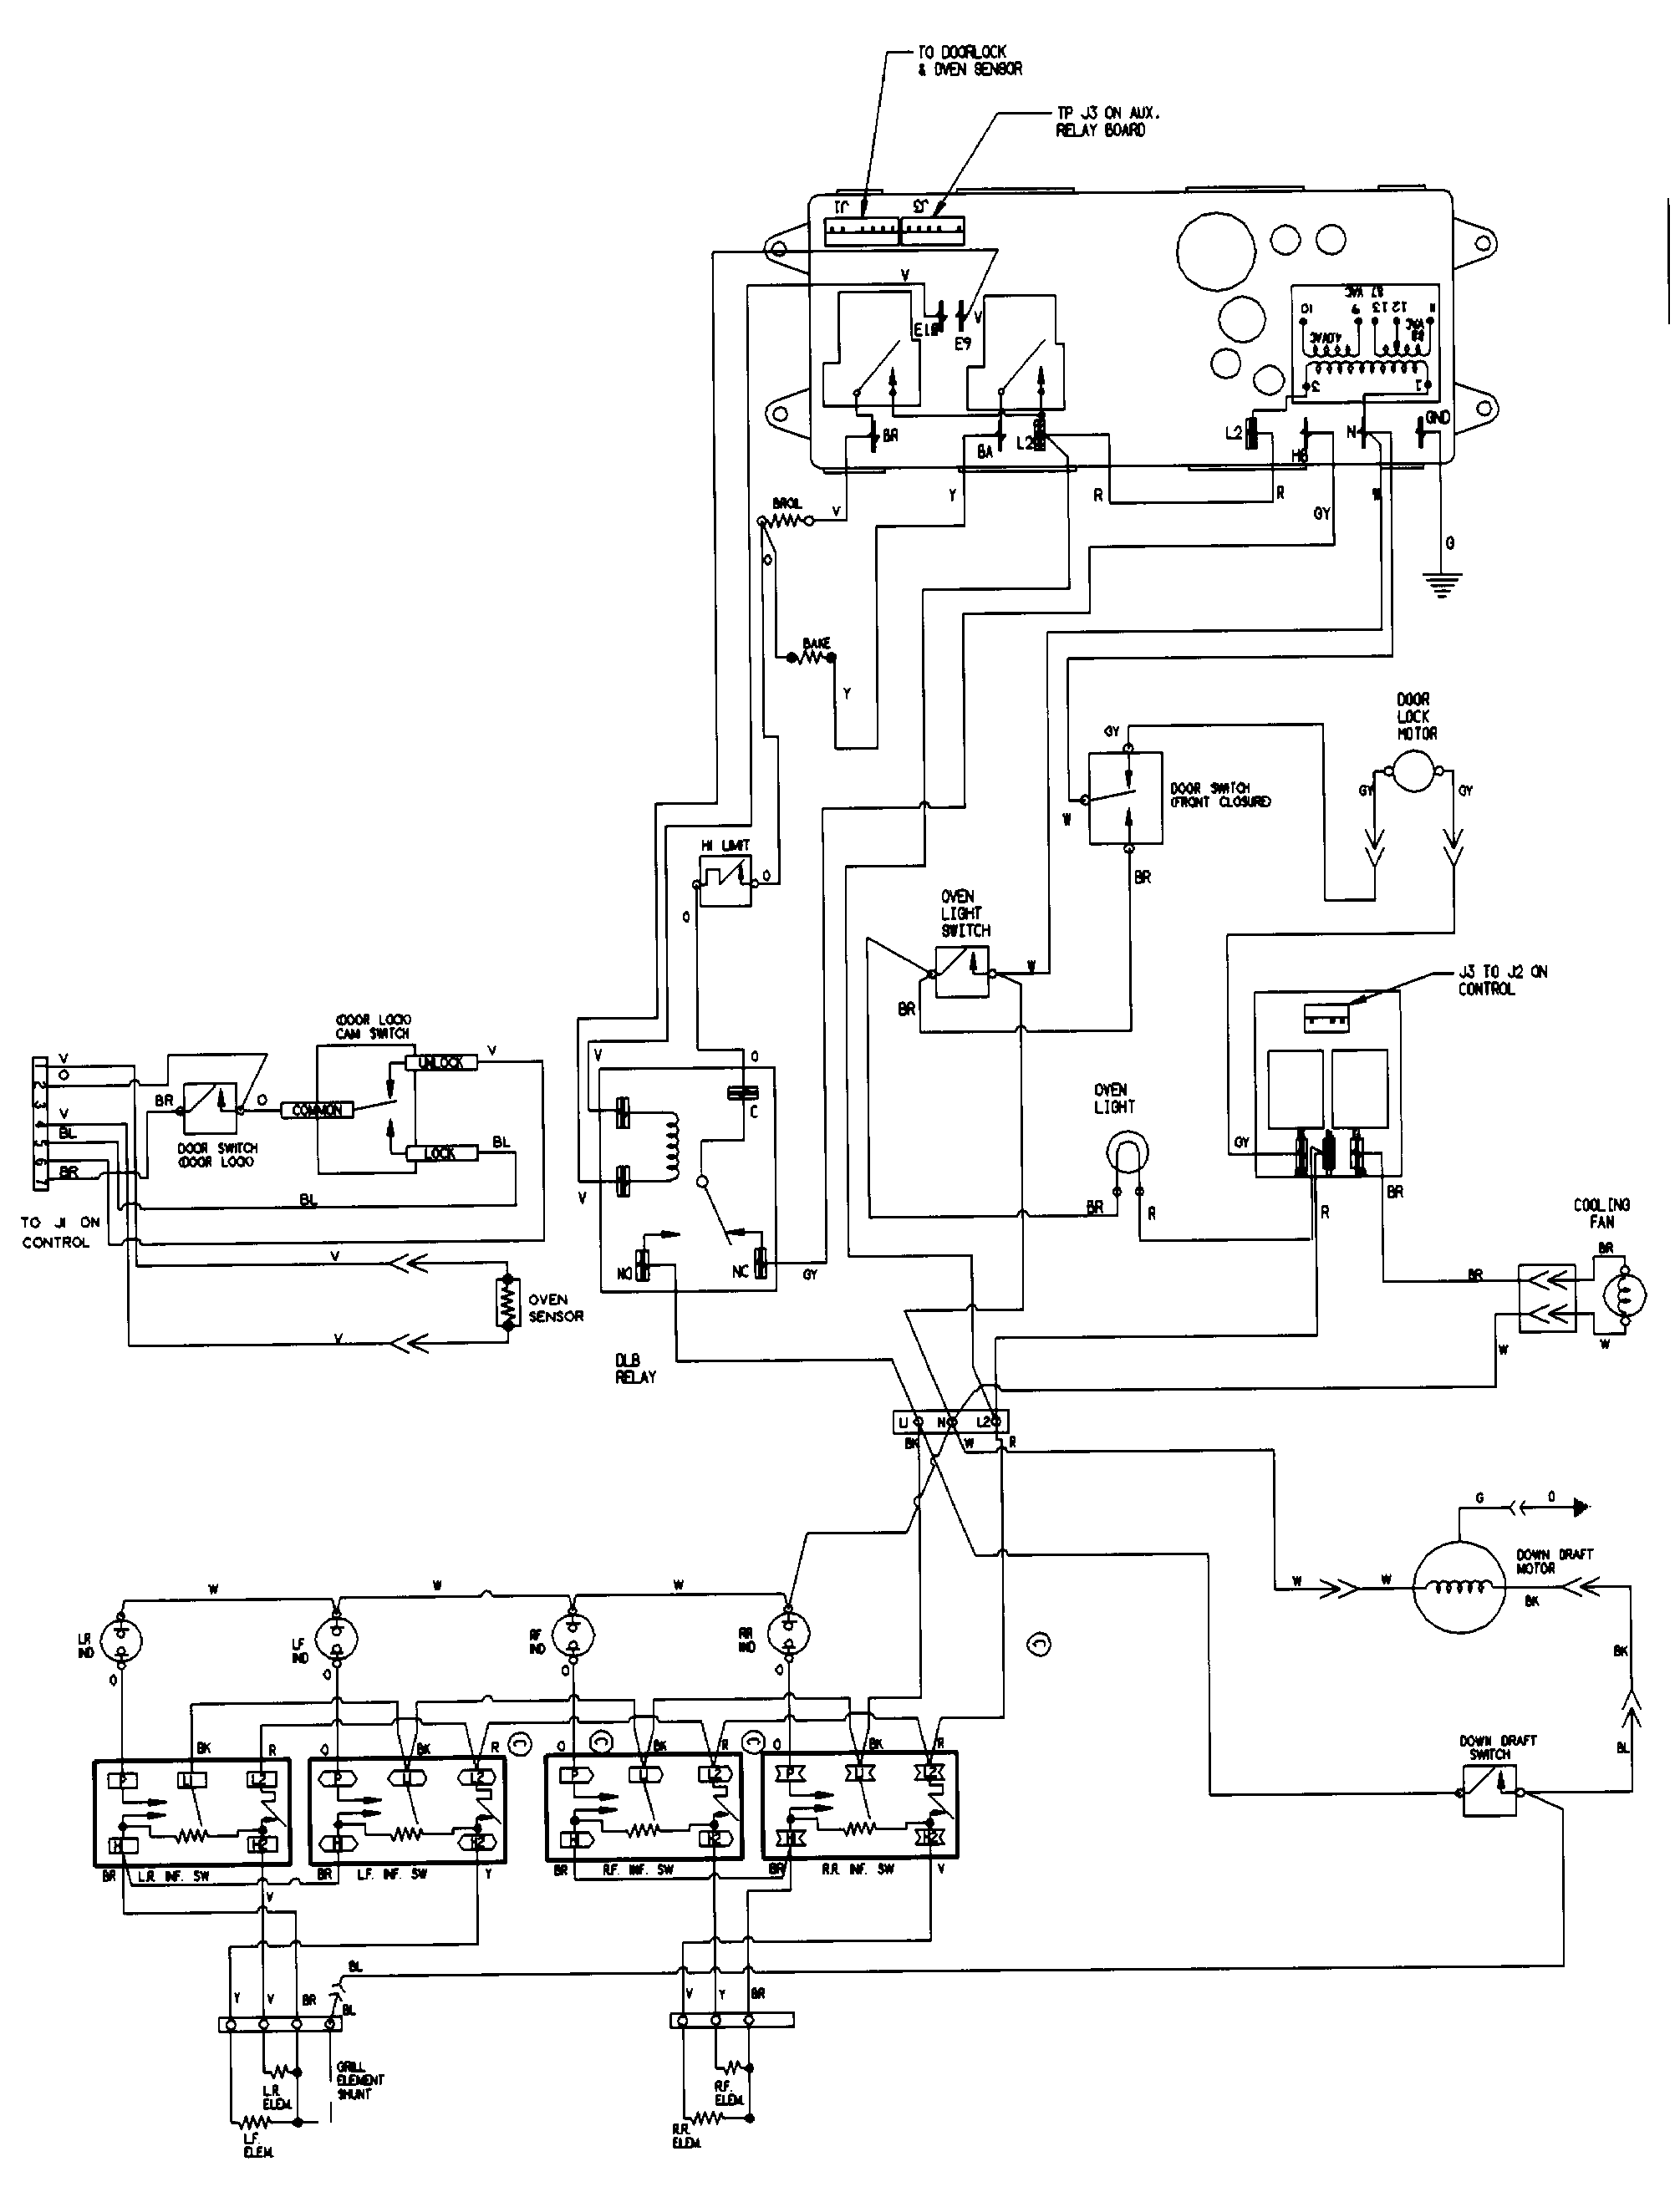 thermador oven wiring diagram #7 thermador oven microwave wiring-diagram thermador oven wiring diagram #7